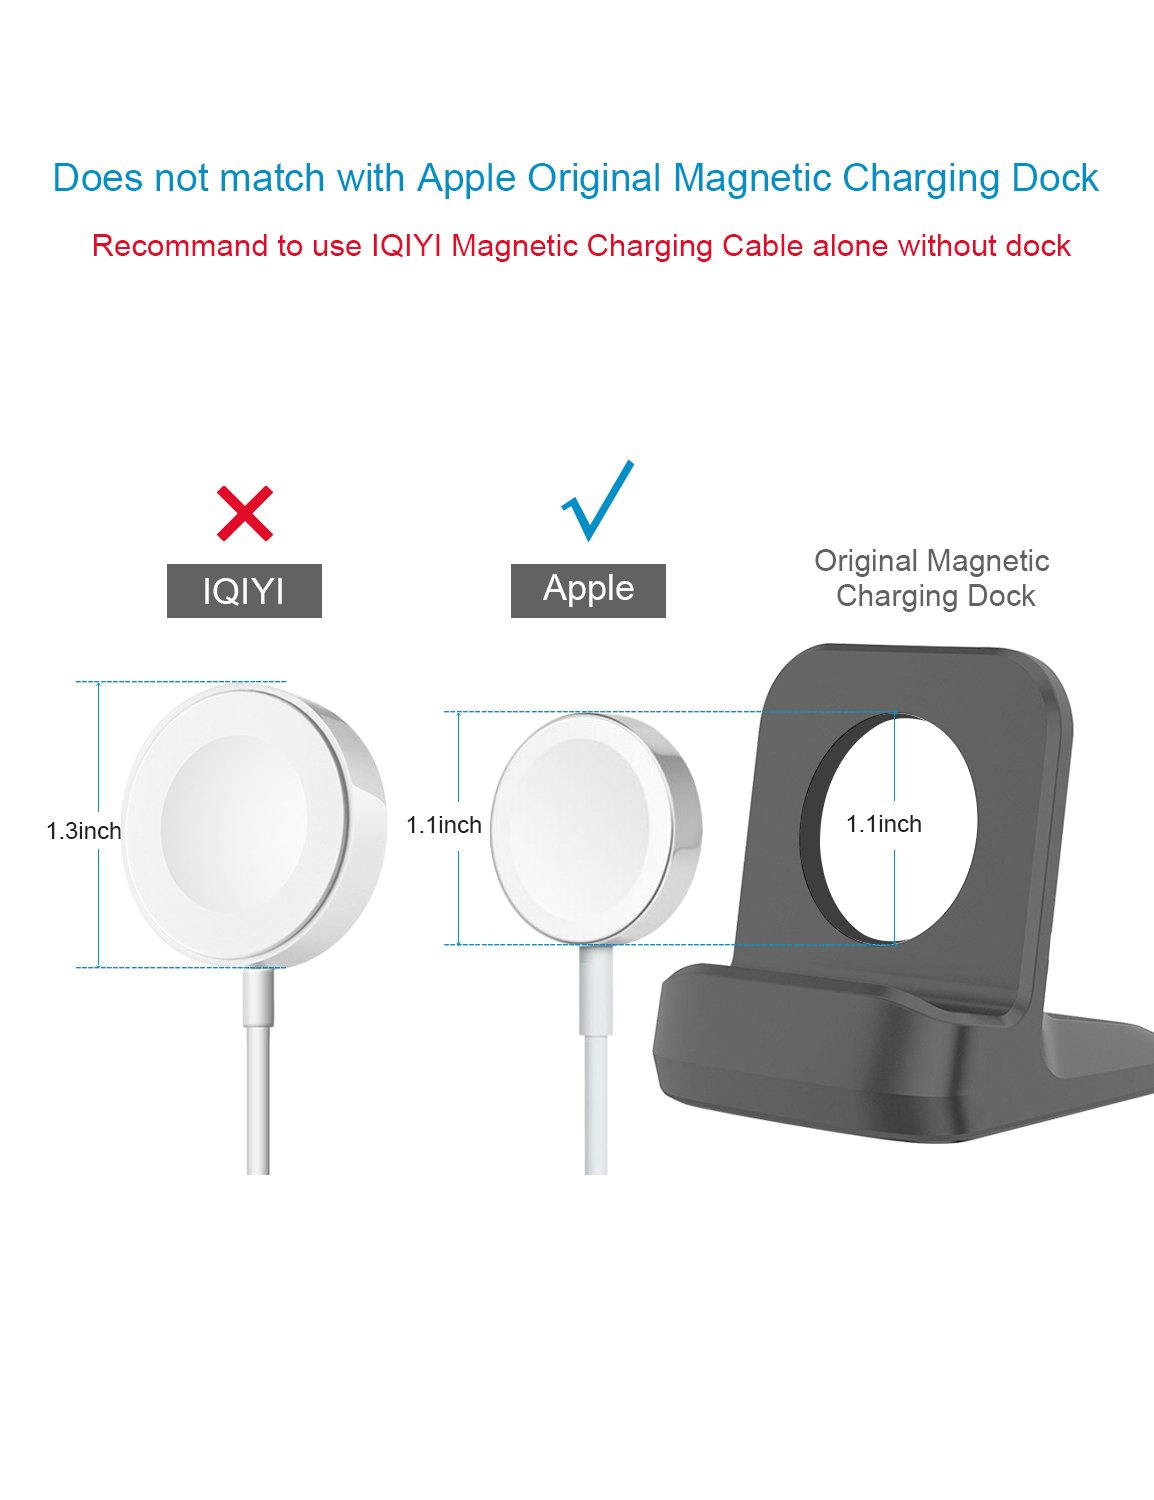 IQIYI Apple Watch Charger, Apple MFi Certified, 1.0ft(0.3M) Magnetic Charging Cable Cord for Apple Watch/iWatch Series 1/2/3 (38mm & 42mm) Portable Charger by IQIYI (Image #4)